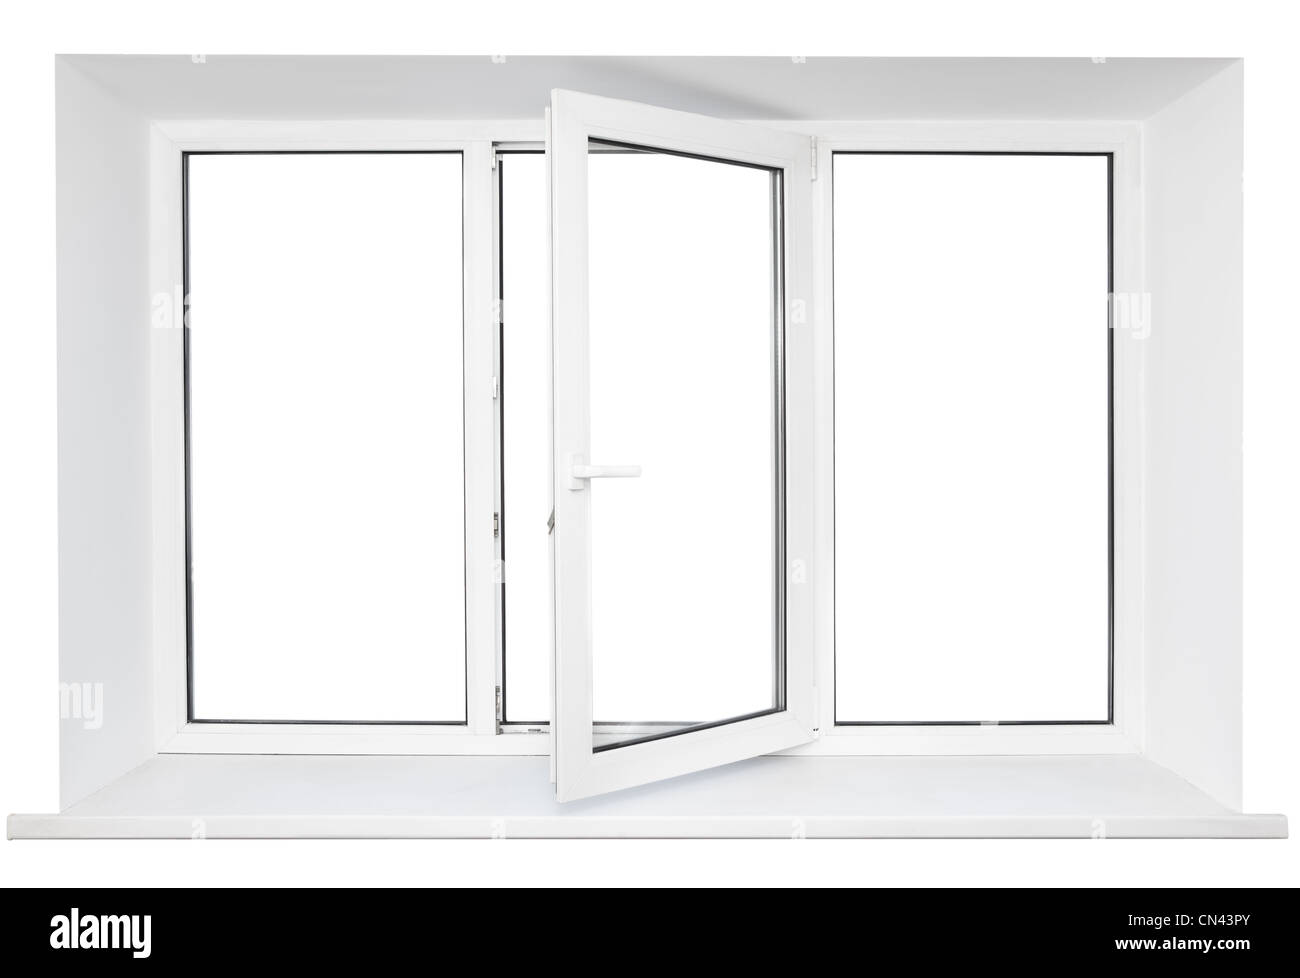 White plastic triple doors window frame with windowsill and opened one middle door isolated on white background Stock Photo